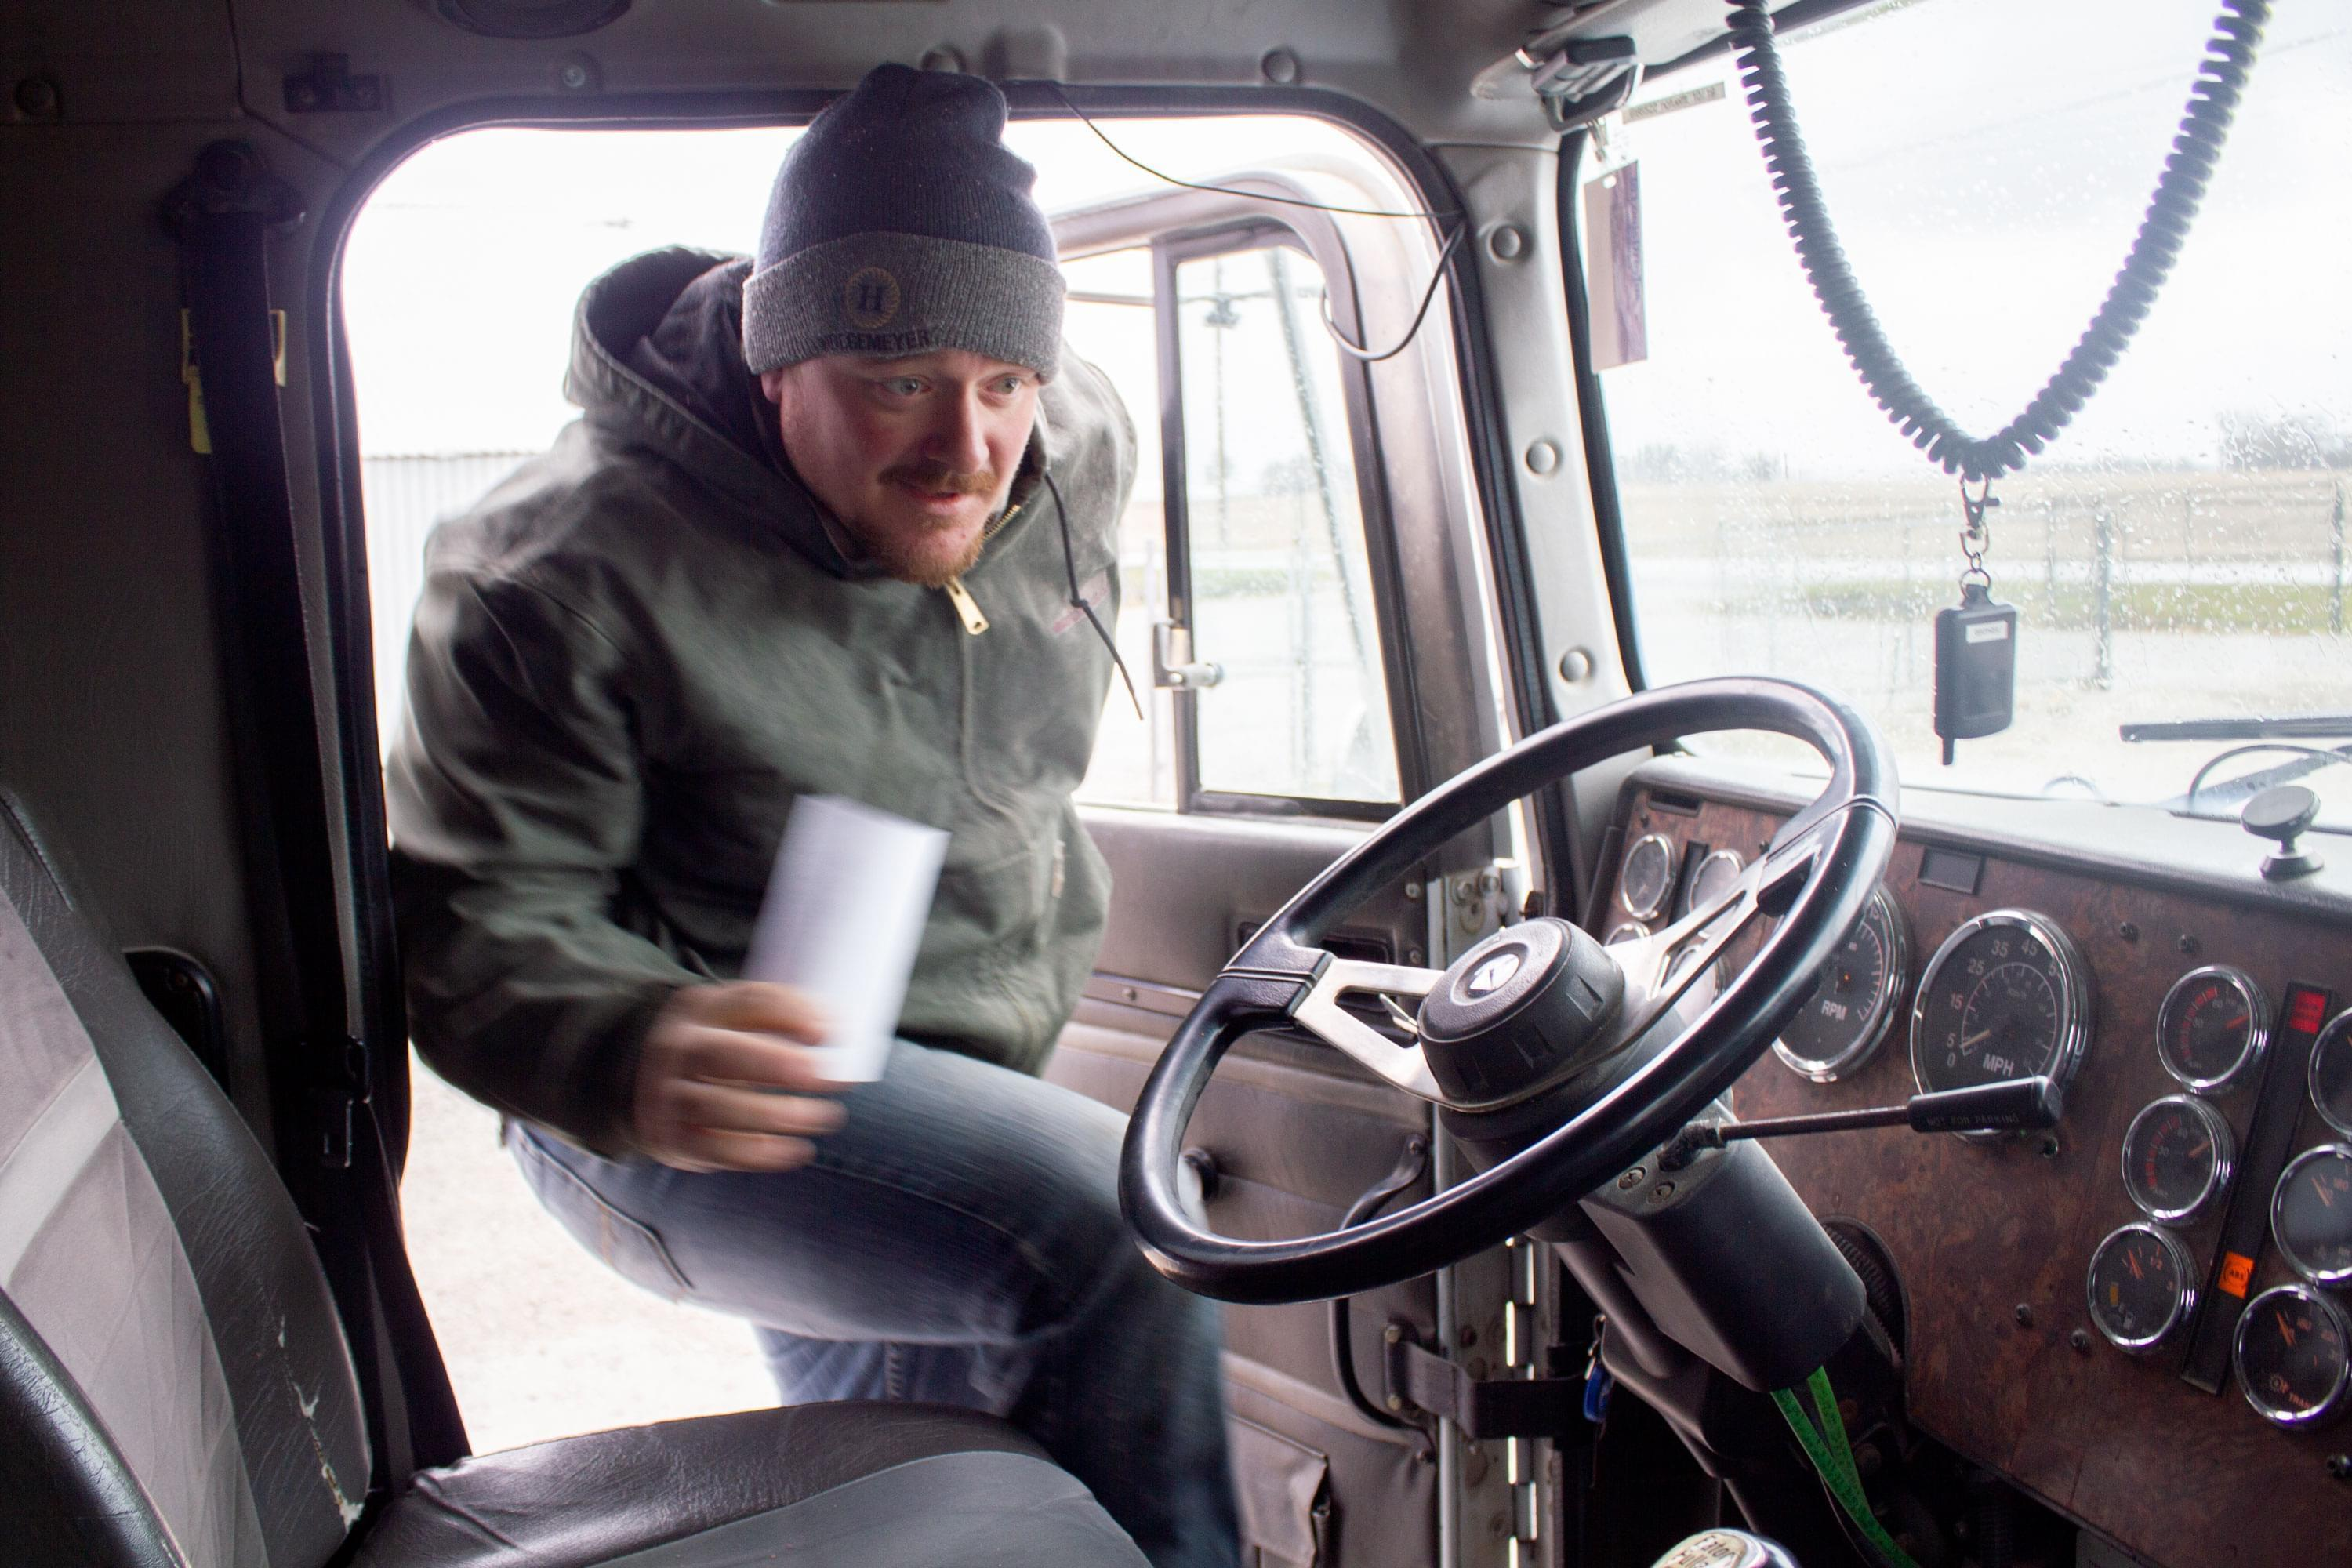 Central Iowa farmer Corey Hillebo climbs into the cab of his semi after picking up the receipt for corn he delivered to a grain elevator.